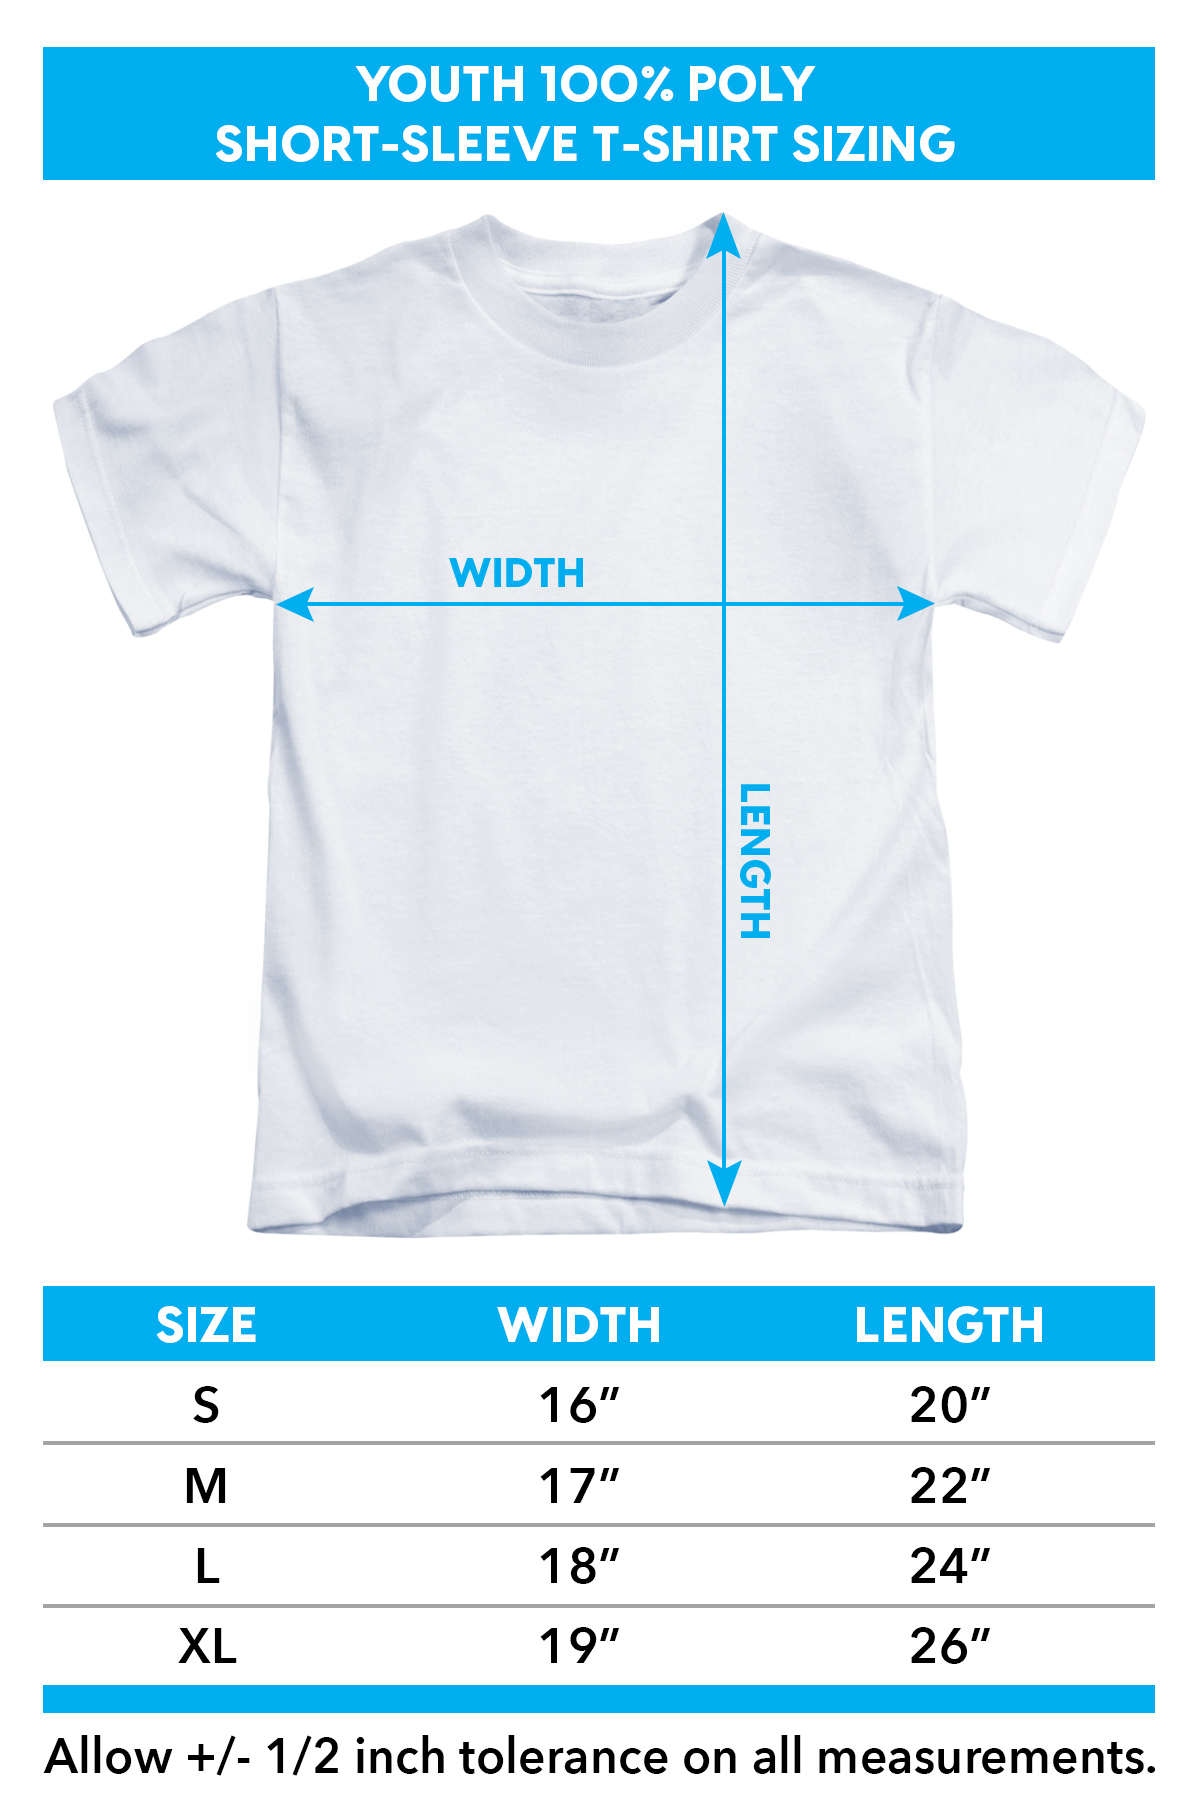 Sizing Chart for Star Trek T-Shirt - Sublimated Voyager Command Uniform